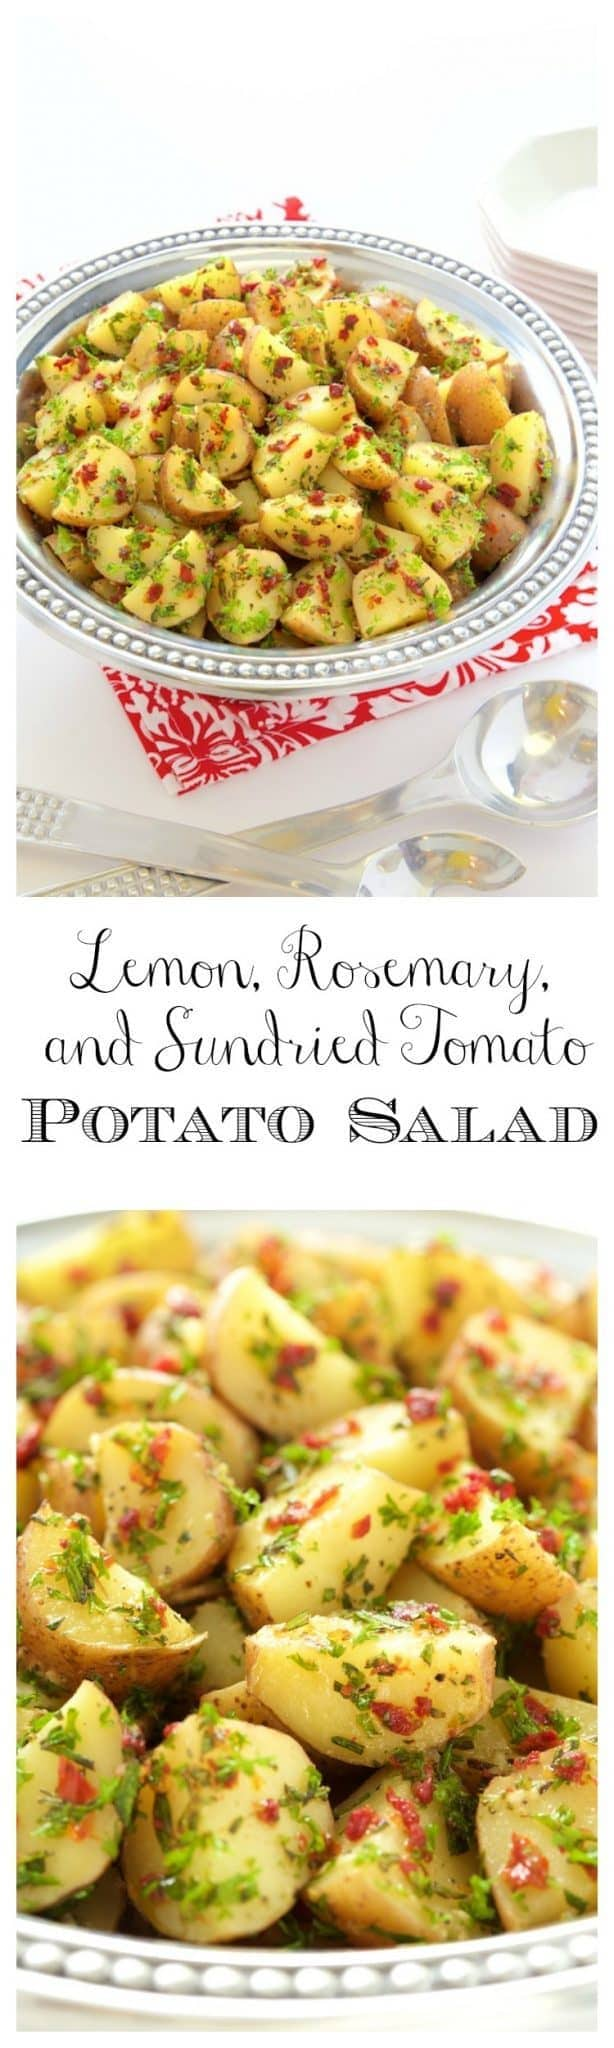 Simple, delicious, this no-Mayo potato salad is always popular!